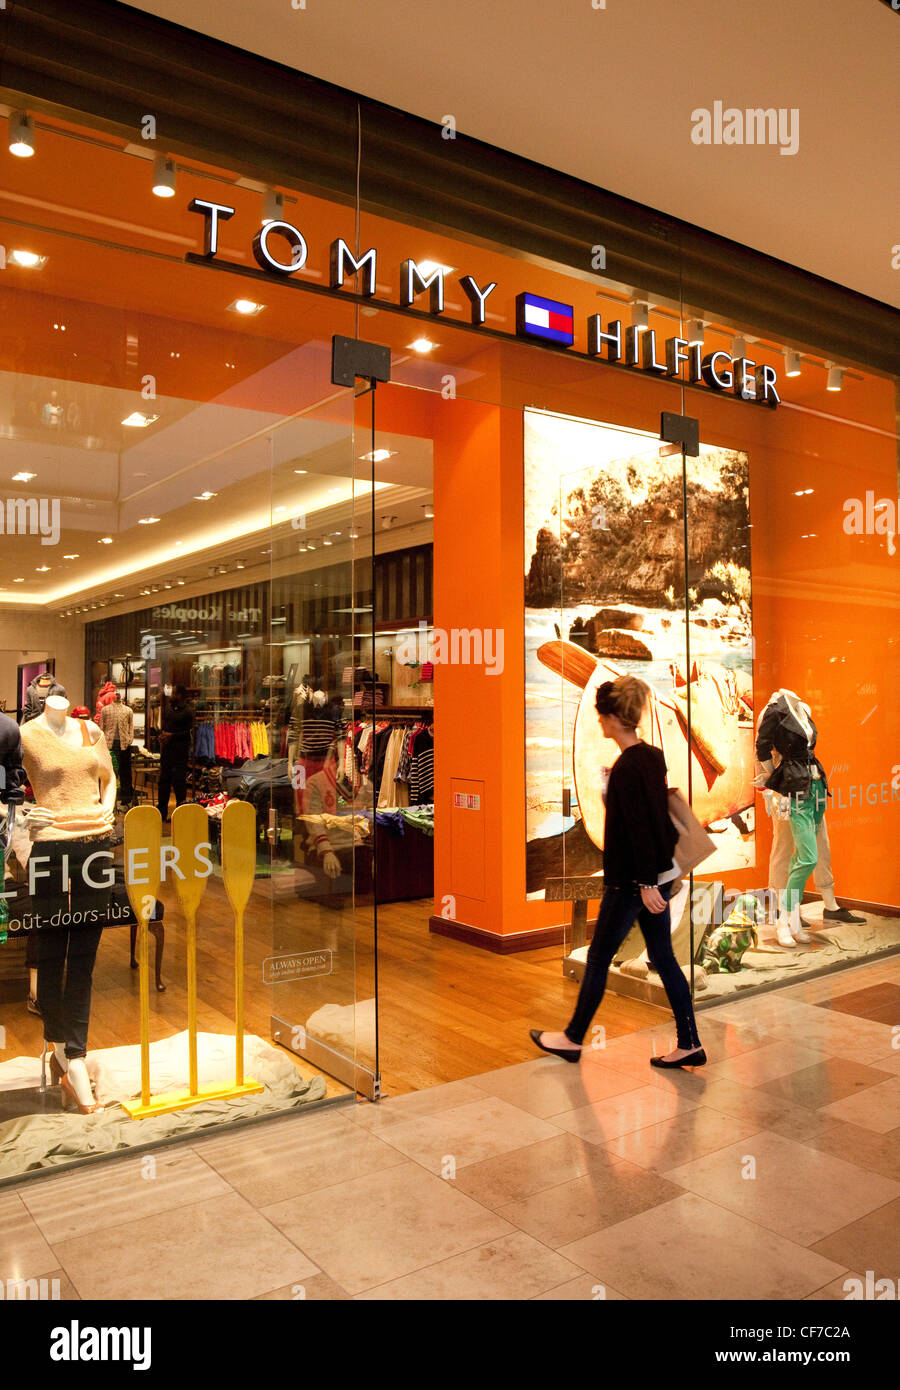 57a9c142 Tommy Hilfiger store, Westfield Shopping centre Stratford London UK ...